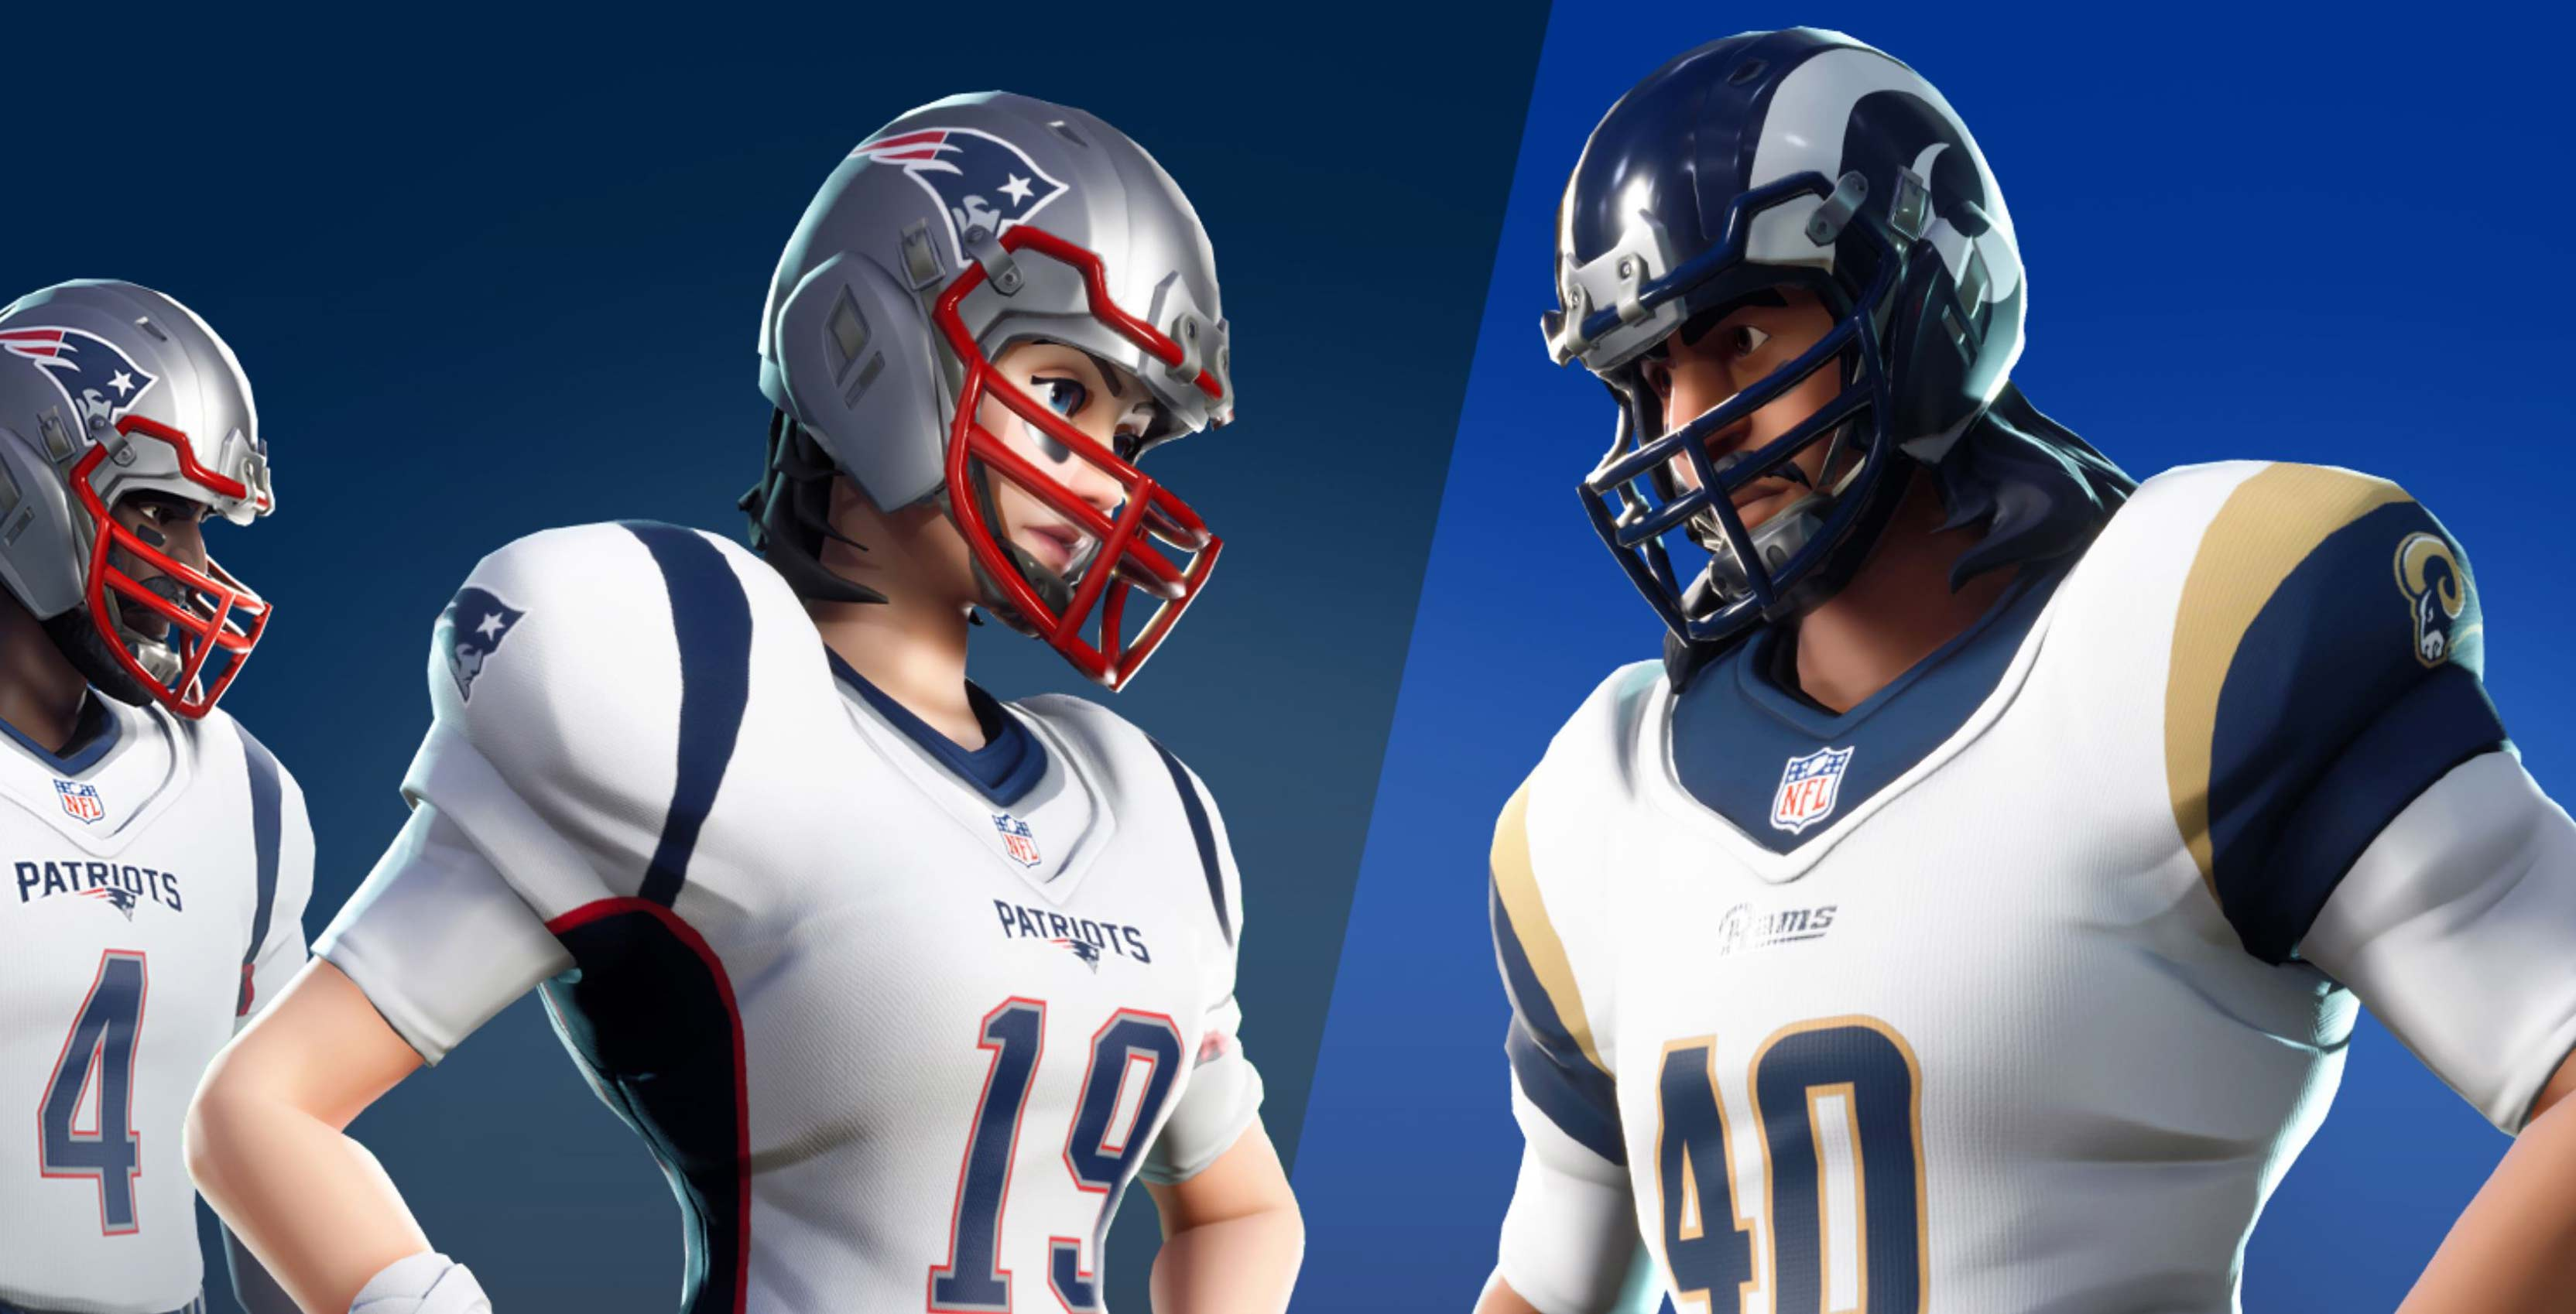 9281ca4ee8a Popular battle royale game Fortnite is getting new cosmetic skins in  celebration of the National Football League's Super Bowl LIII.